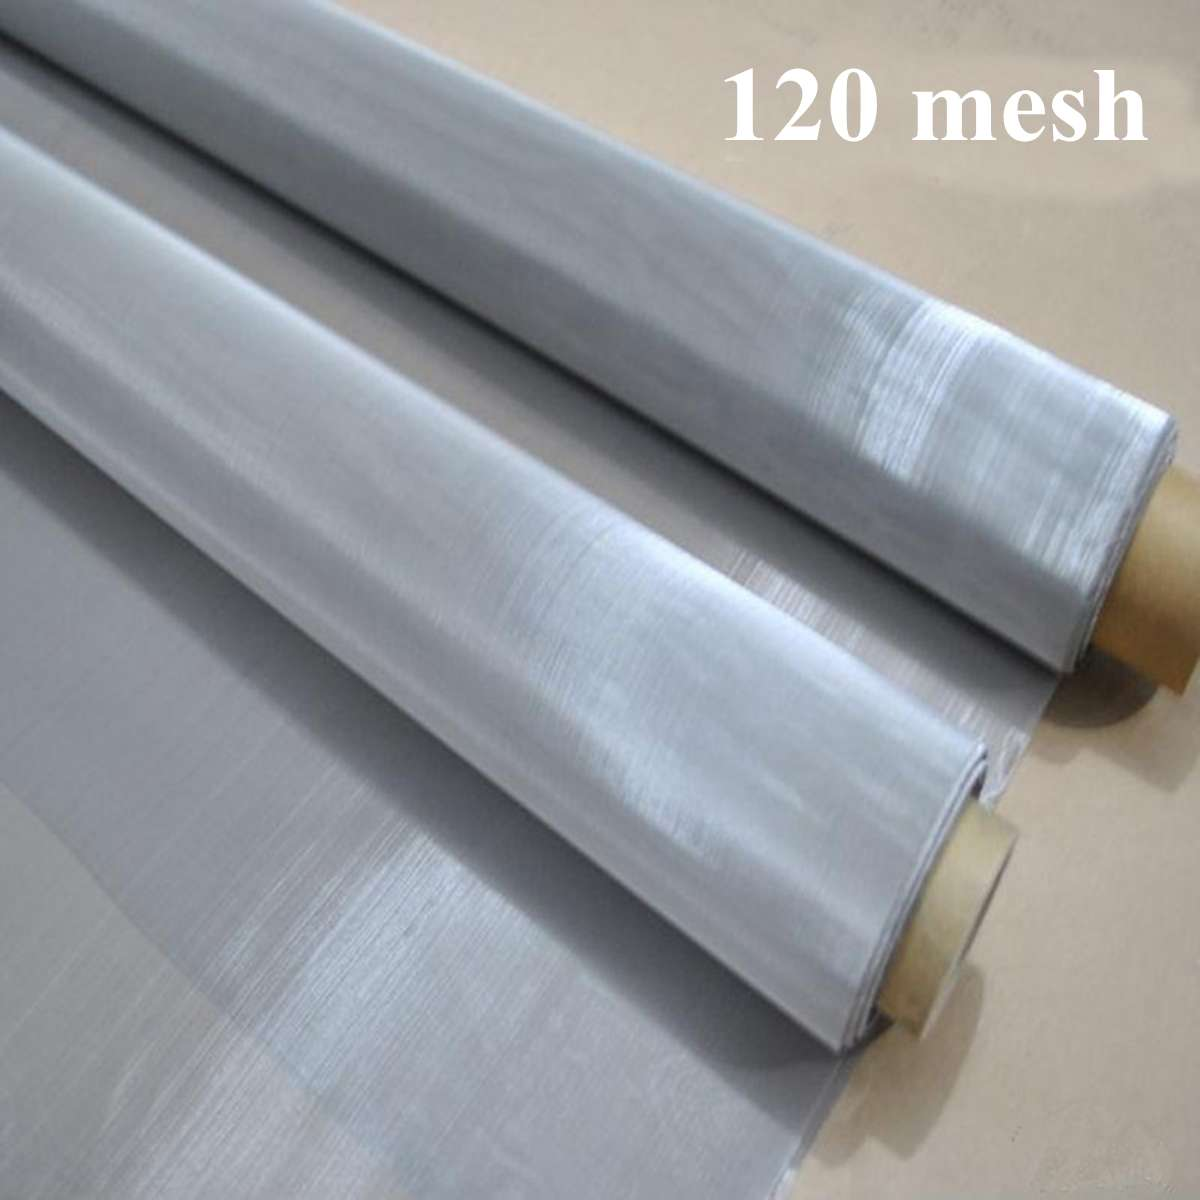 30x90cm Stainless Steel Woven Wire Filter 120 Mesh 125 Micron Sheet Cloth Screen Filtering Weather Resistance For Home Tool